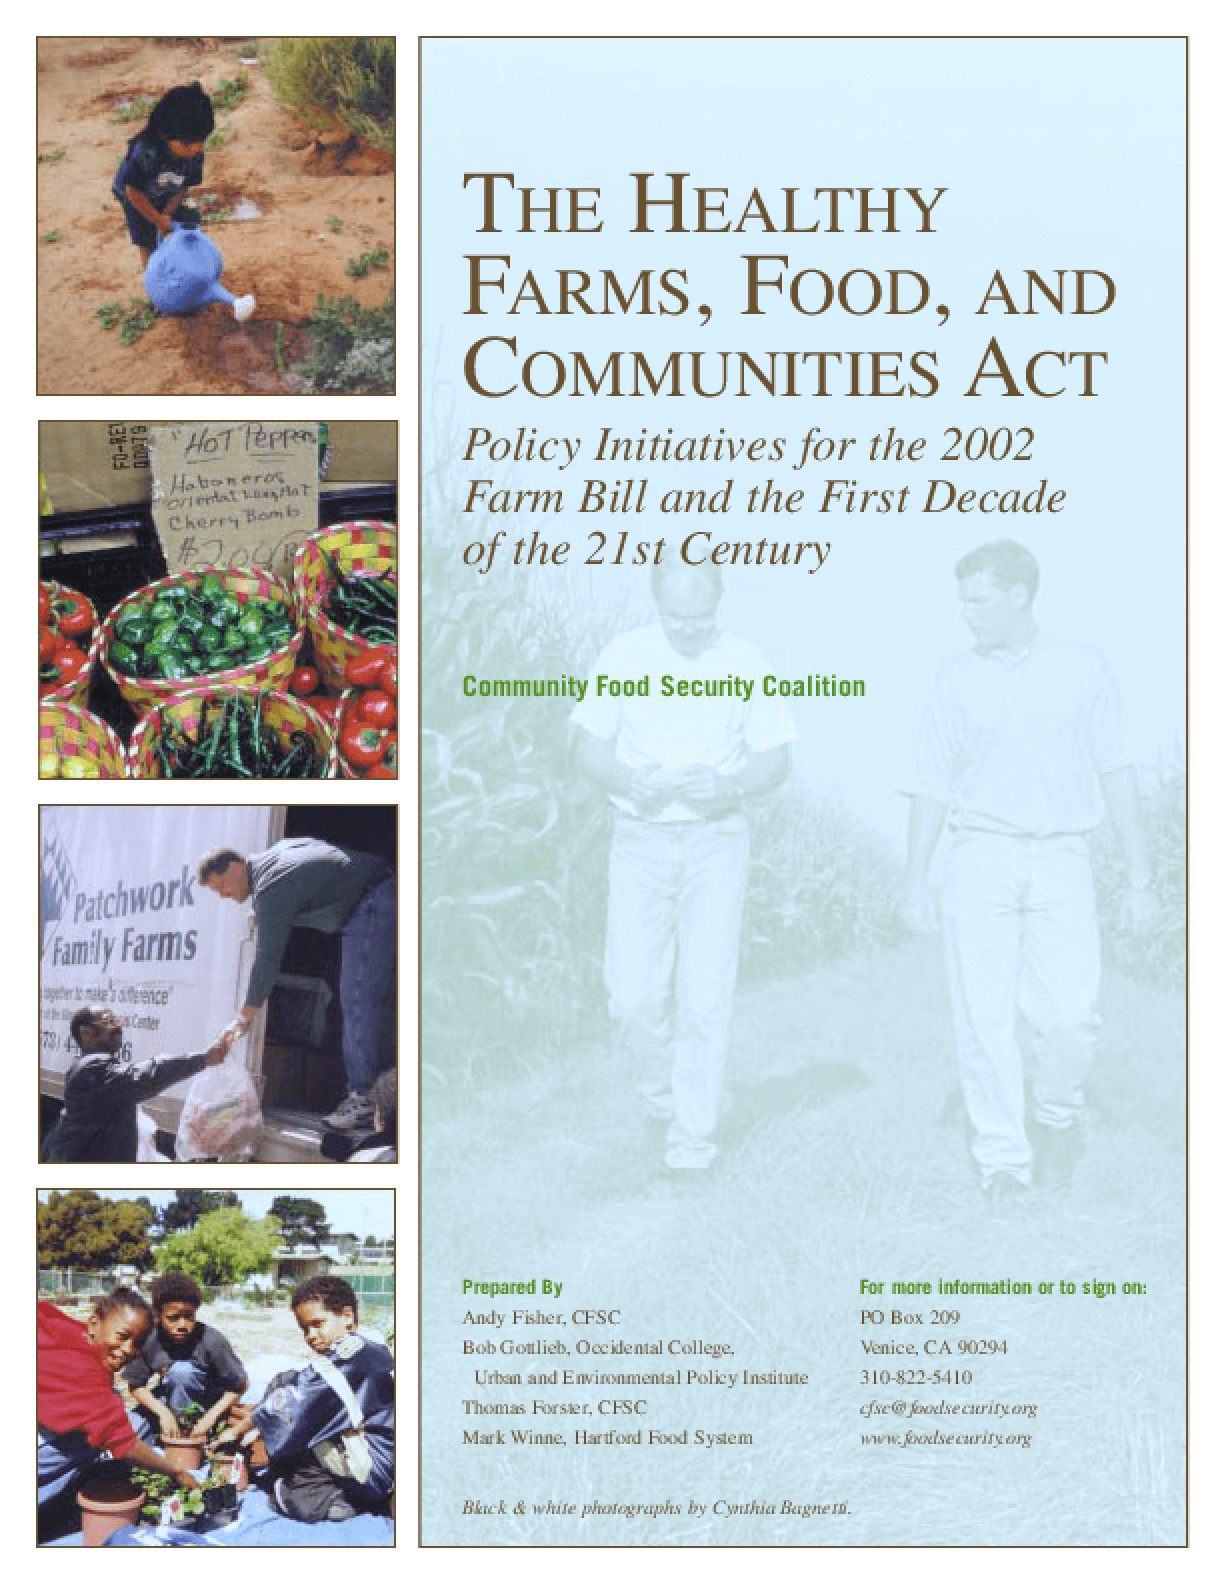 The Healthy Farms, Food and Communities Act: Policy Initiatives for the 2002 Farm Bill And the First Decade of the 21st Century